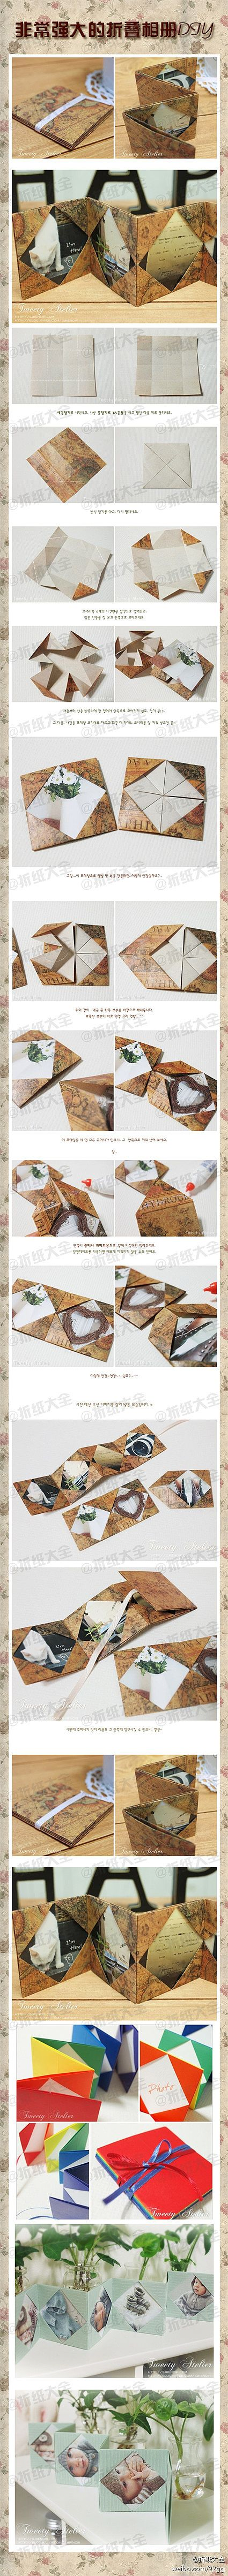 Book DIY] retro feel of the full folding album! ! ! - Original: - the original address: